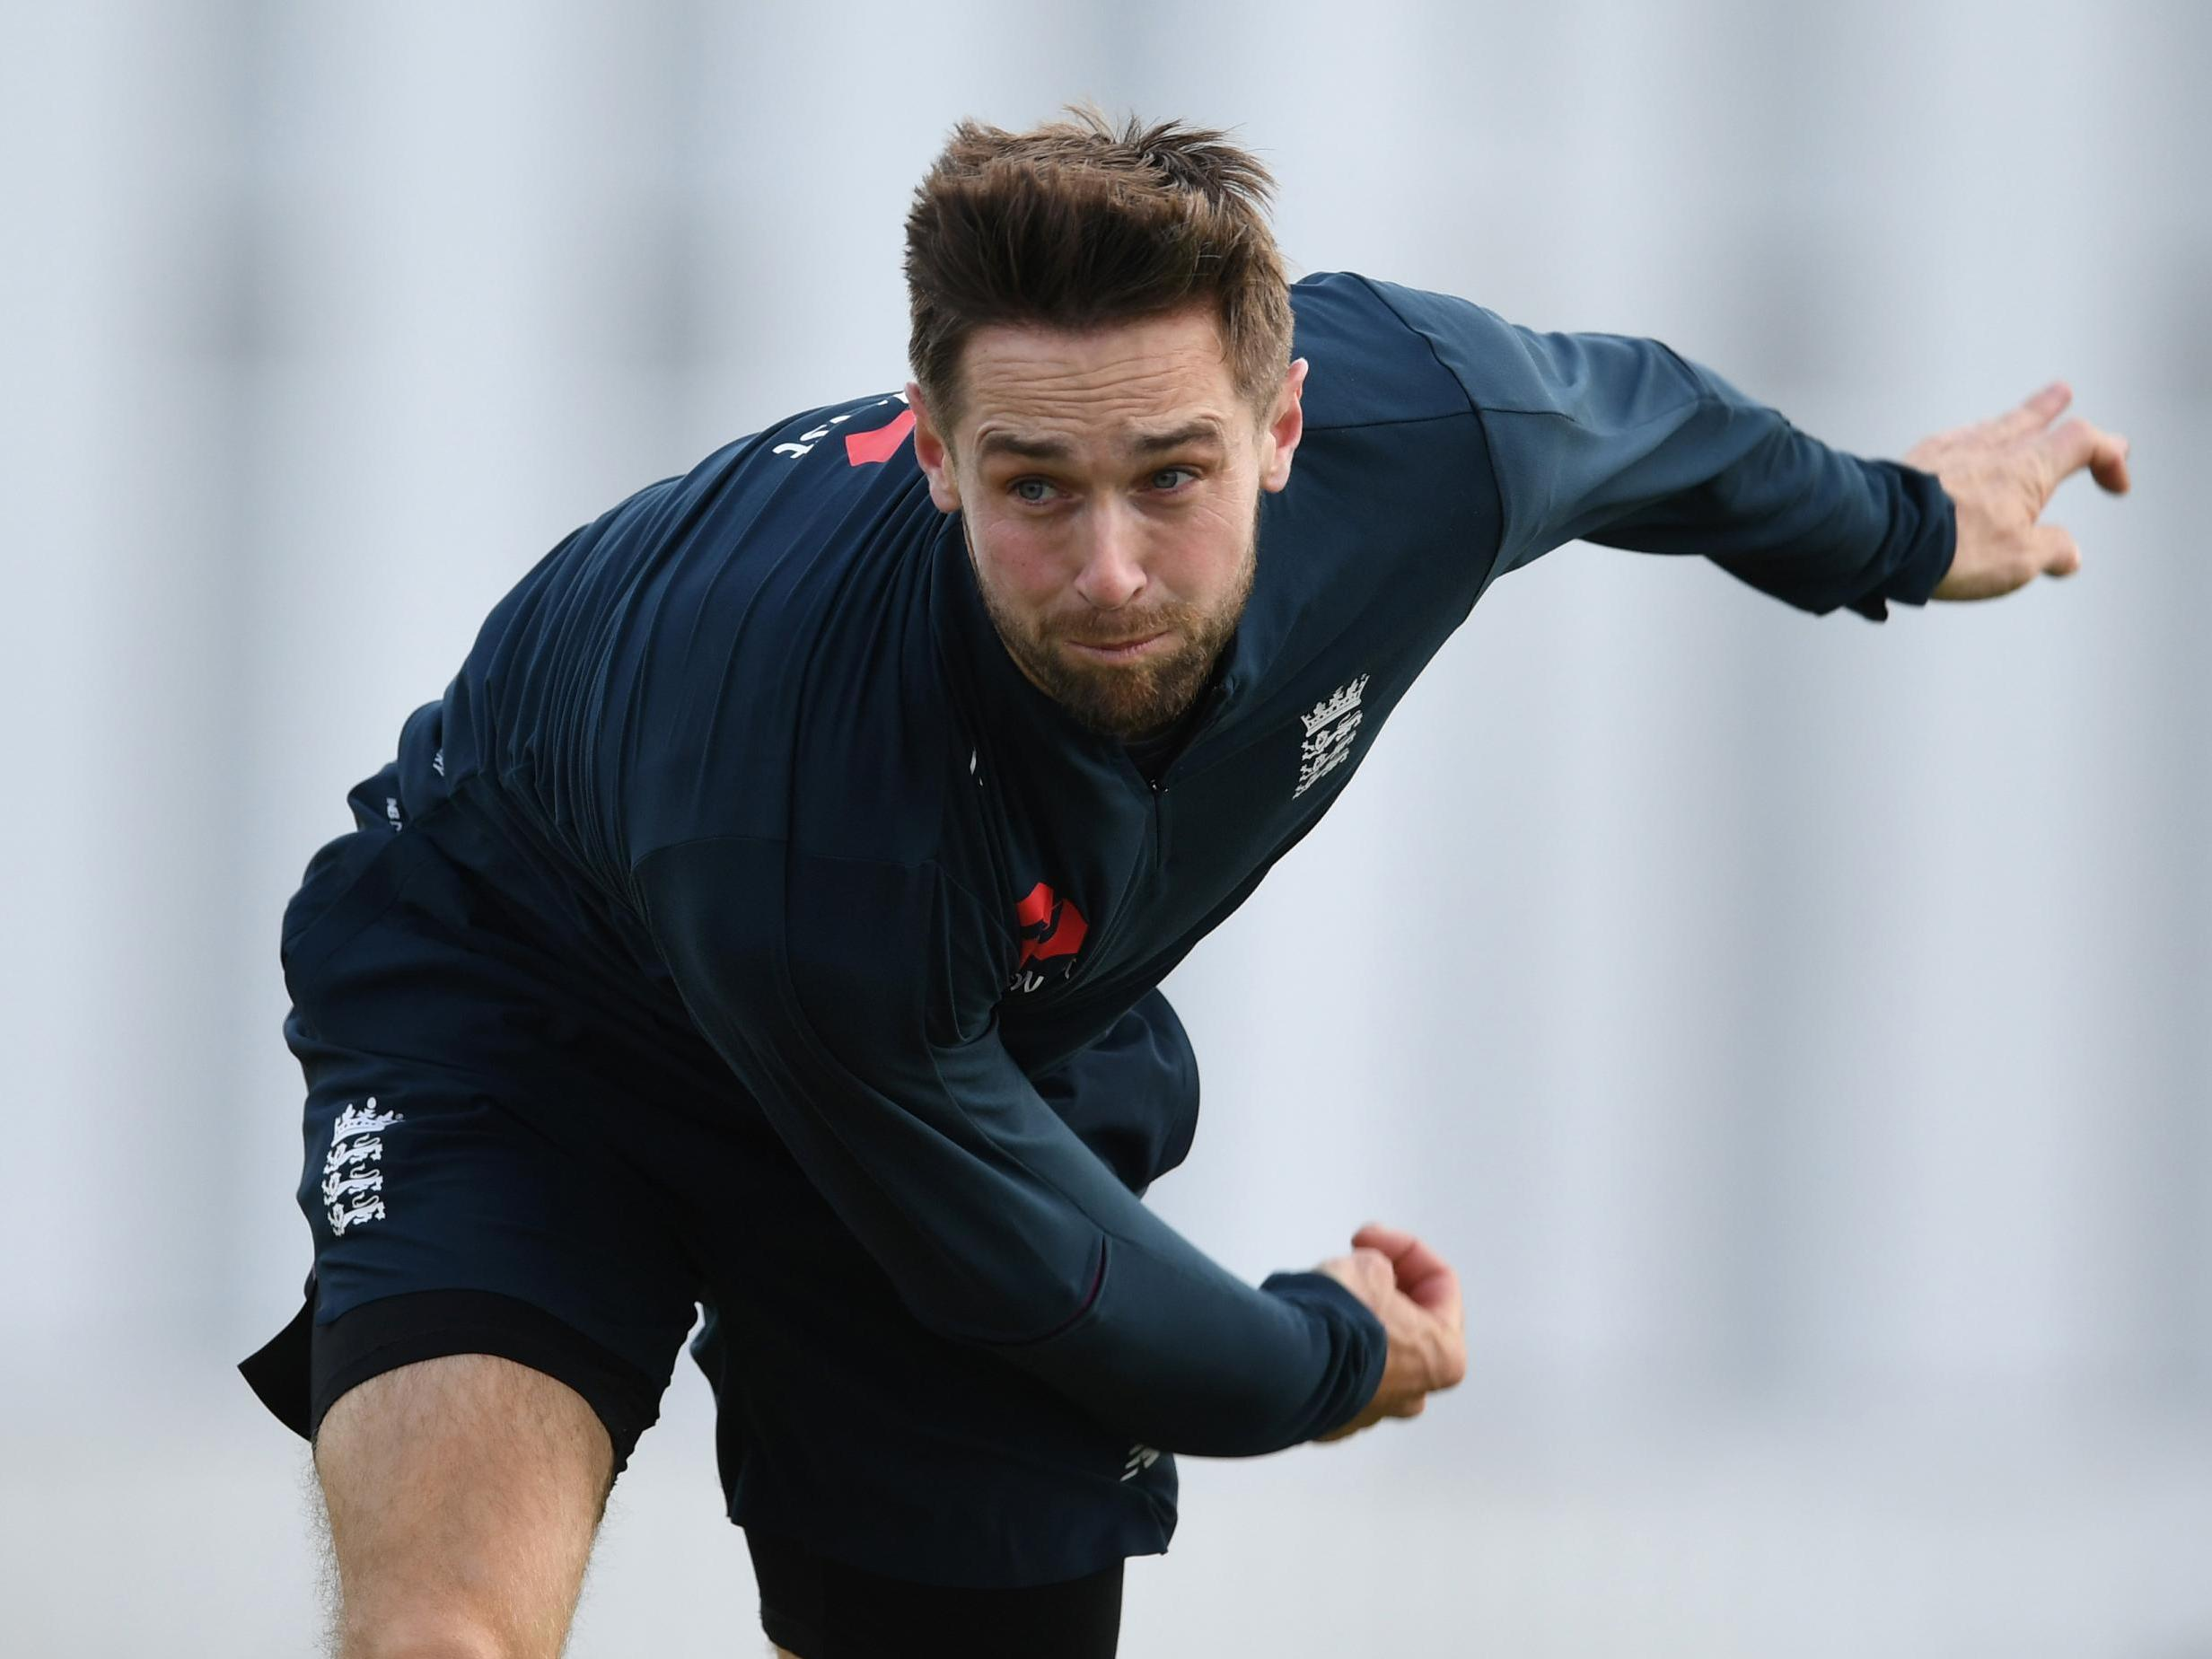 Chris Woakes admits England's bowlers will have to 'find a way' against New Zealand